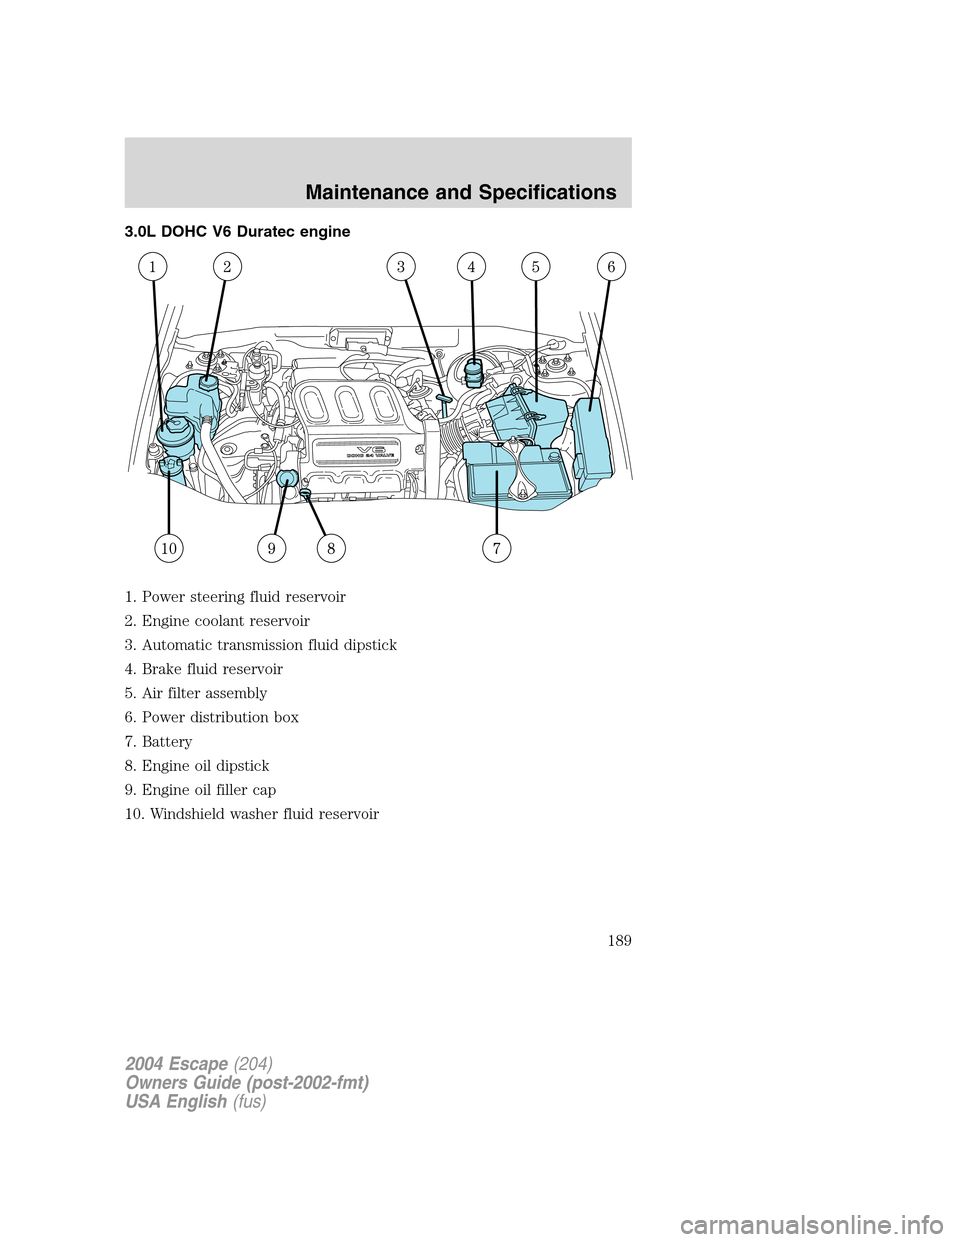 Oil Filter Ford Escape 2004 1g Owners Manual 2002 V6 Engine Diagram Page 189 30l Dohc Duratec